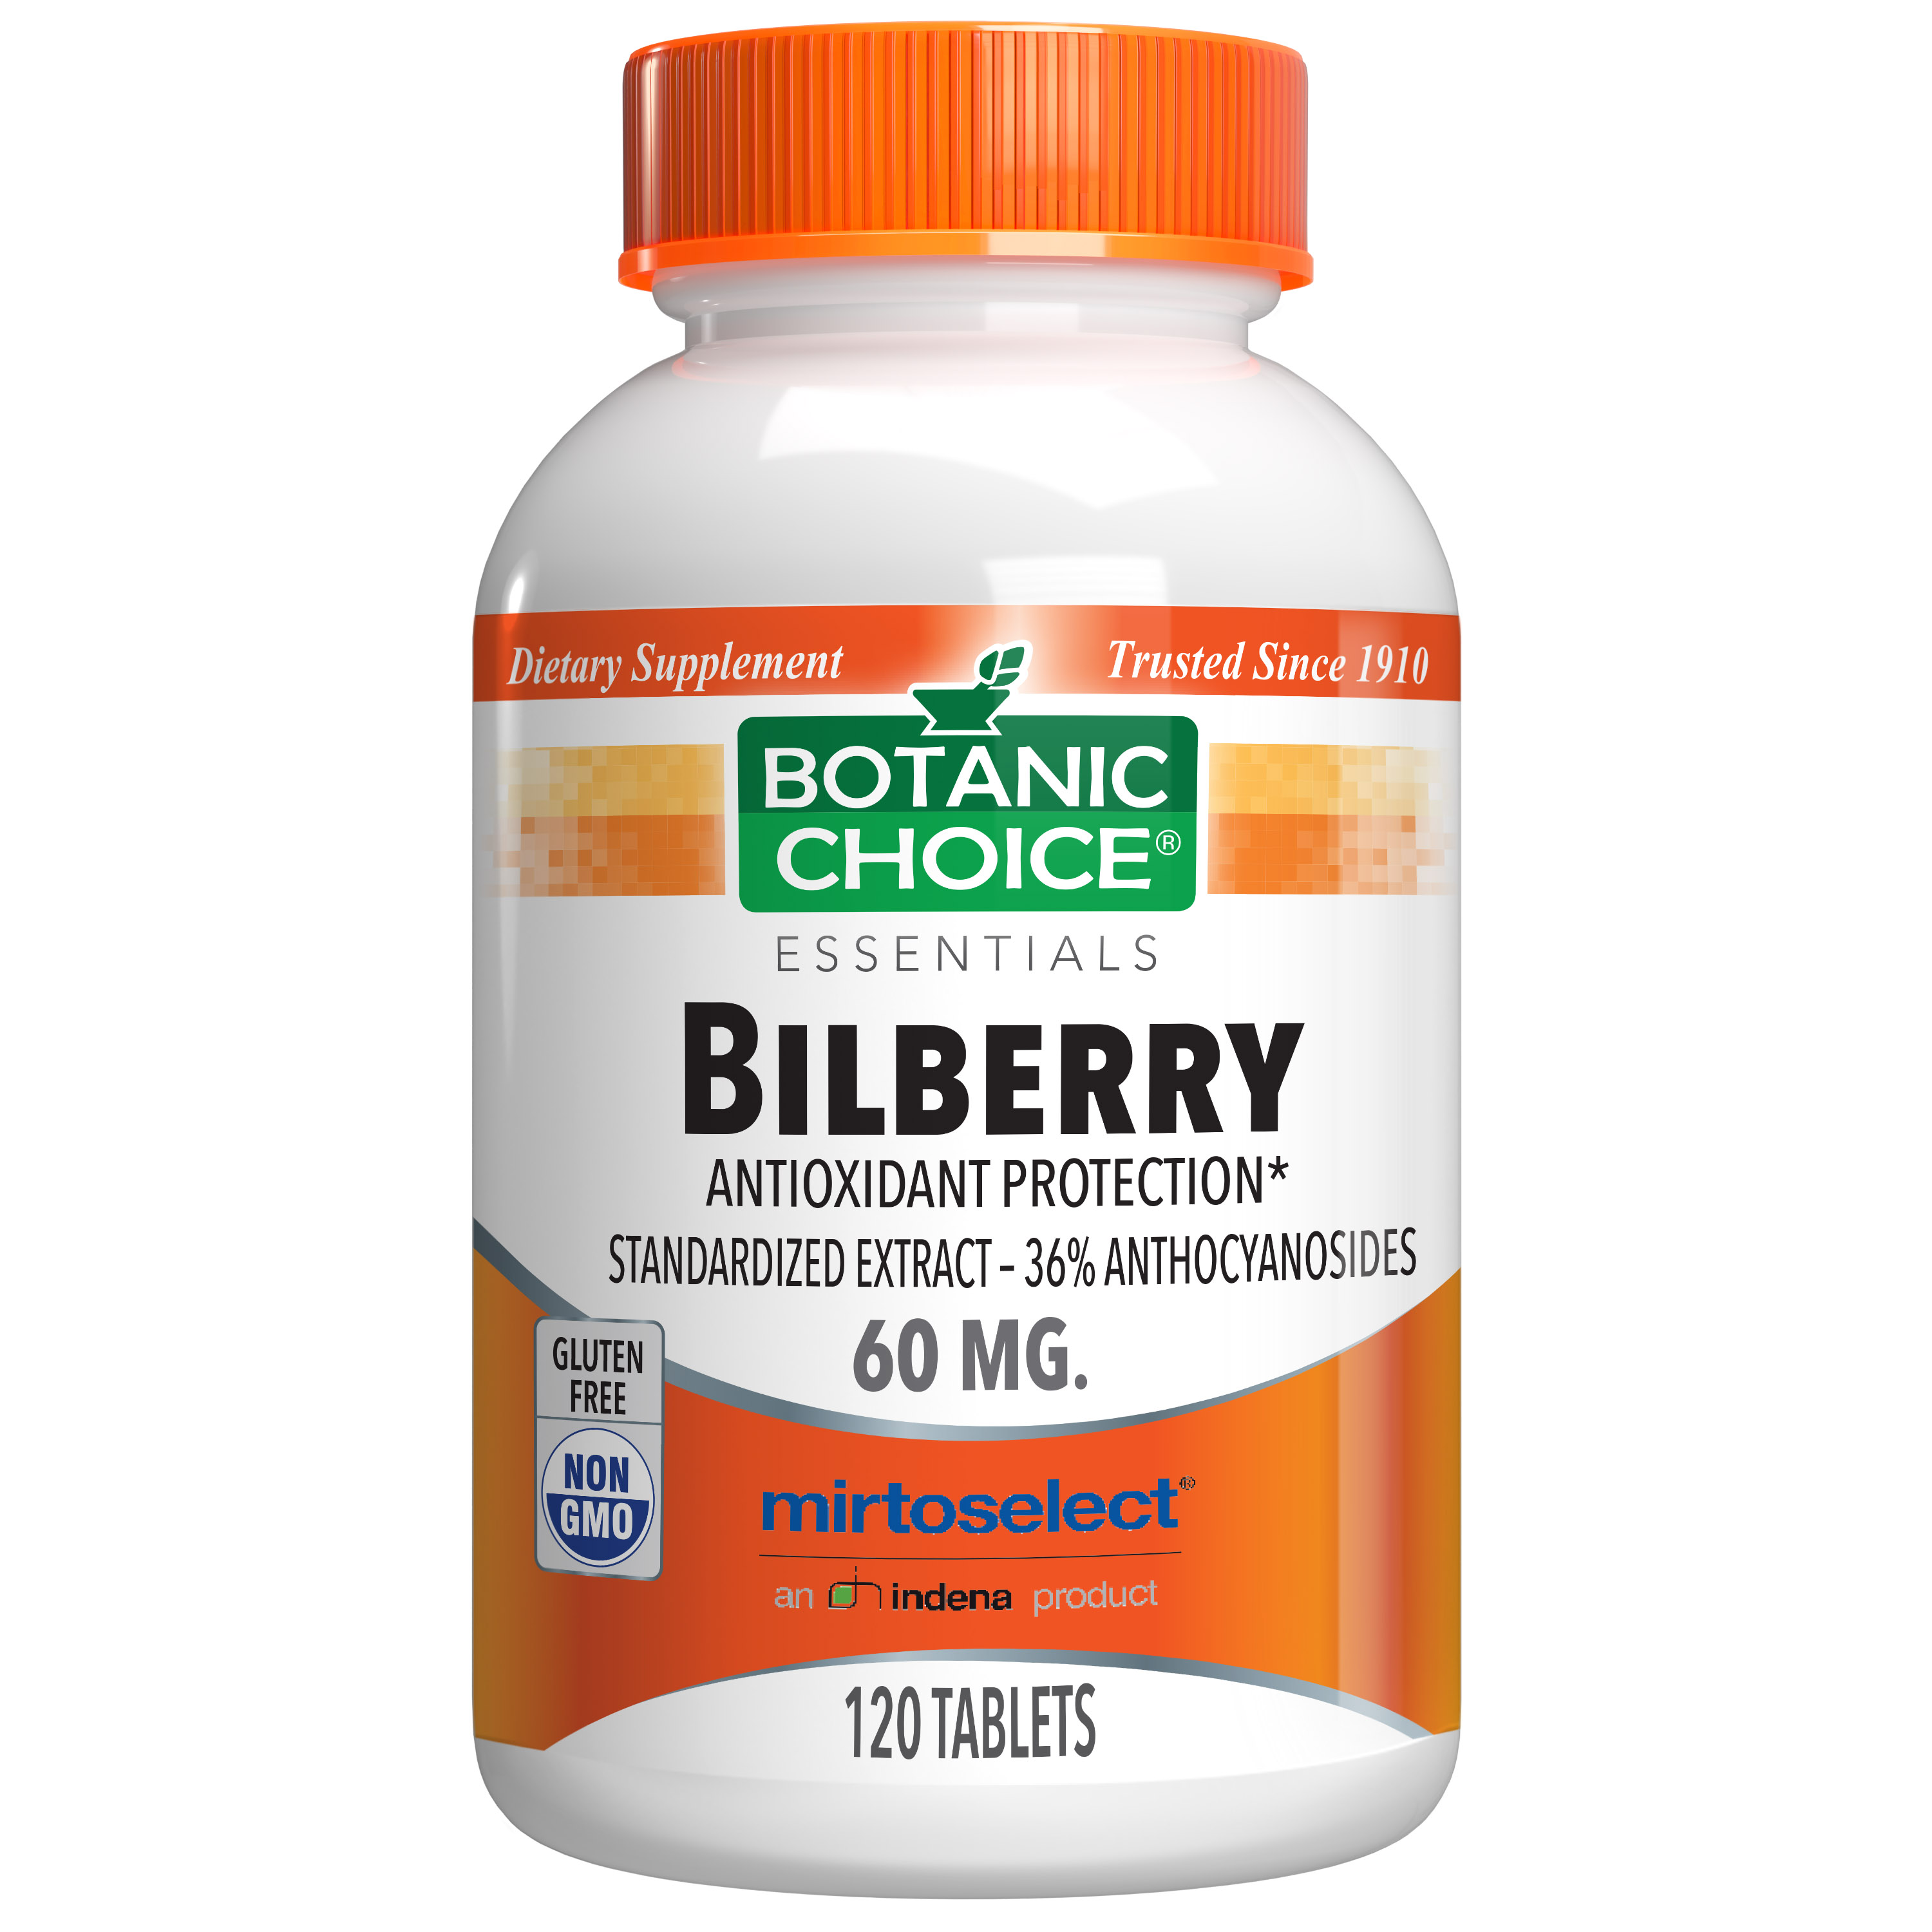 Botanic Choice Bilberry Extract Standardized for 36% Anthocyanosides - 120 Tablets